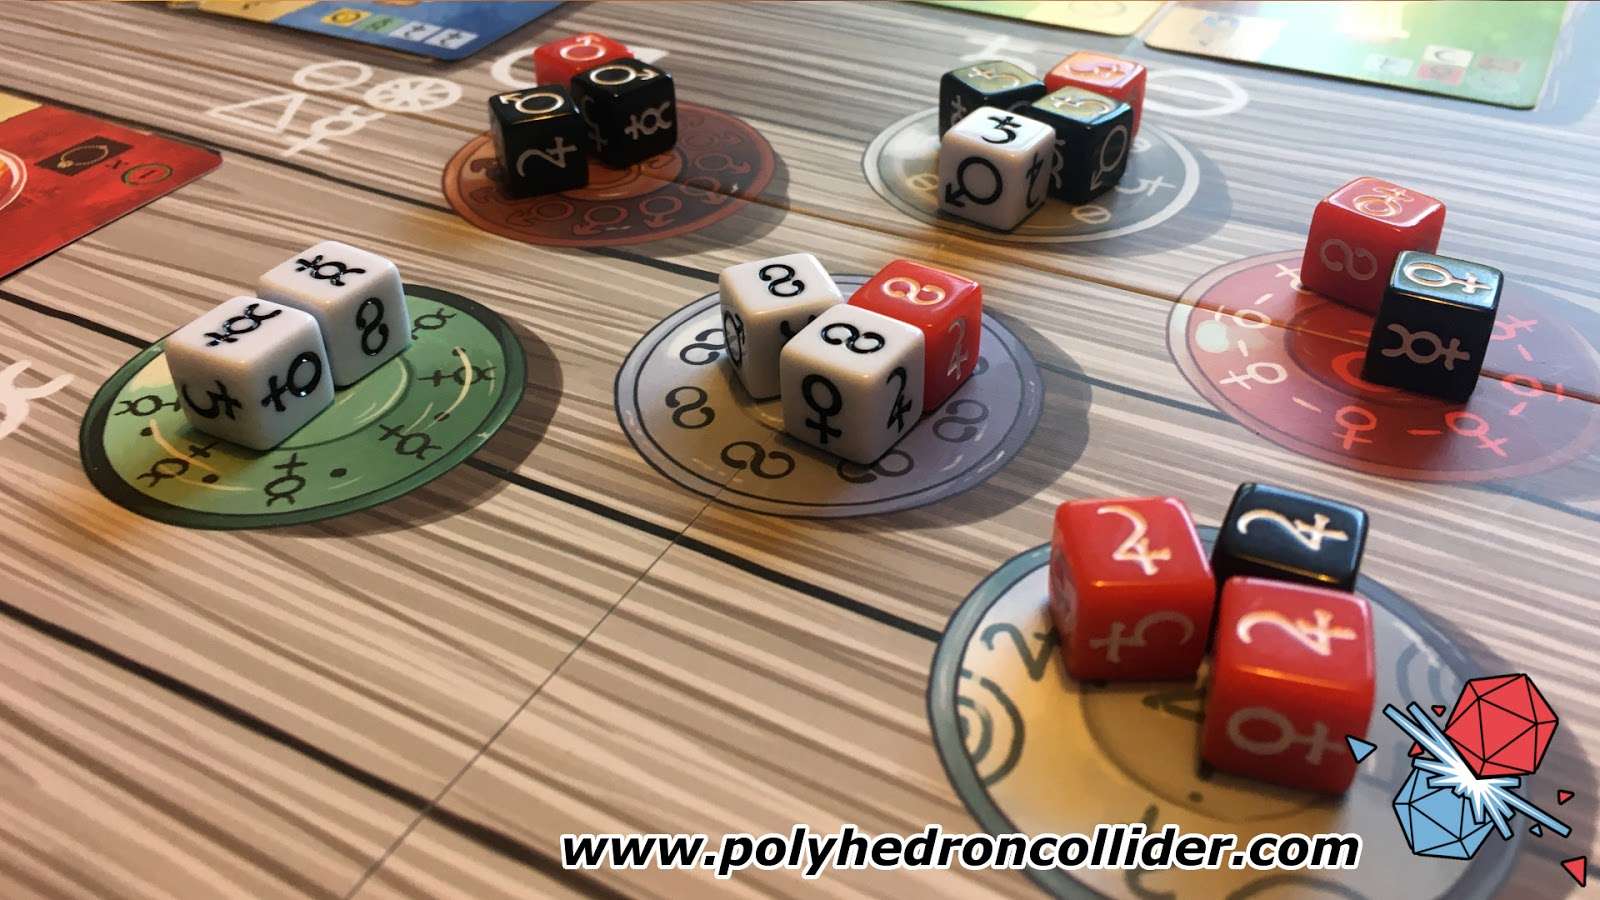 Trismegistus: The Ultimate Formula Review dice pool